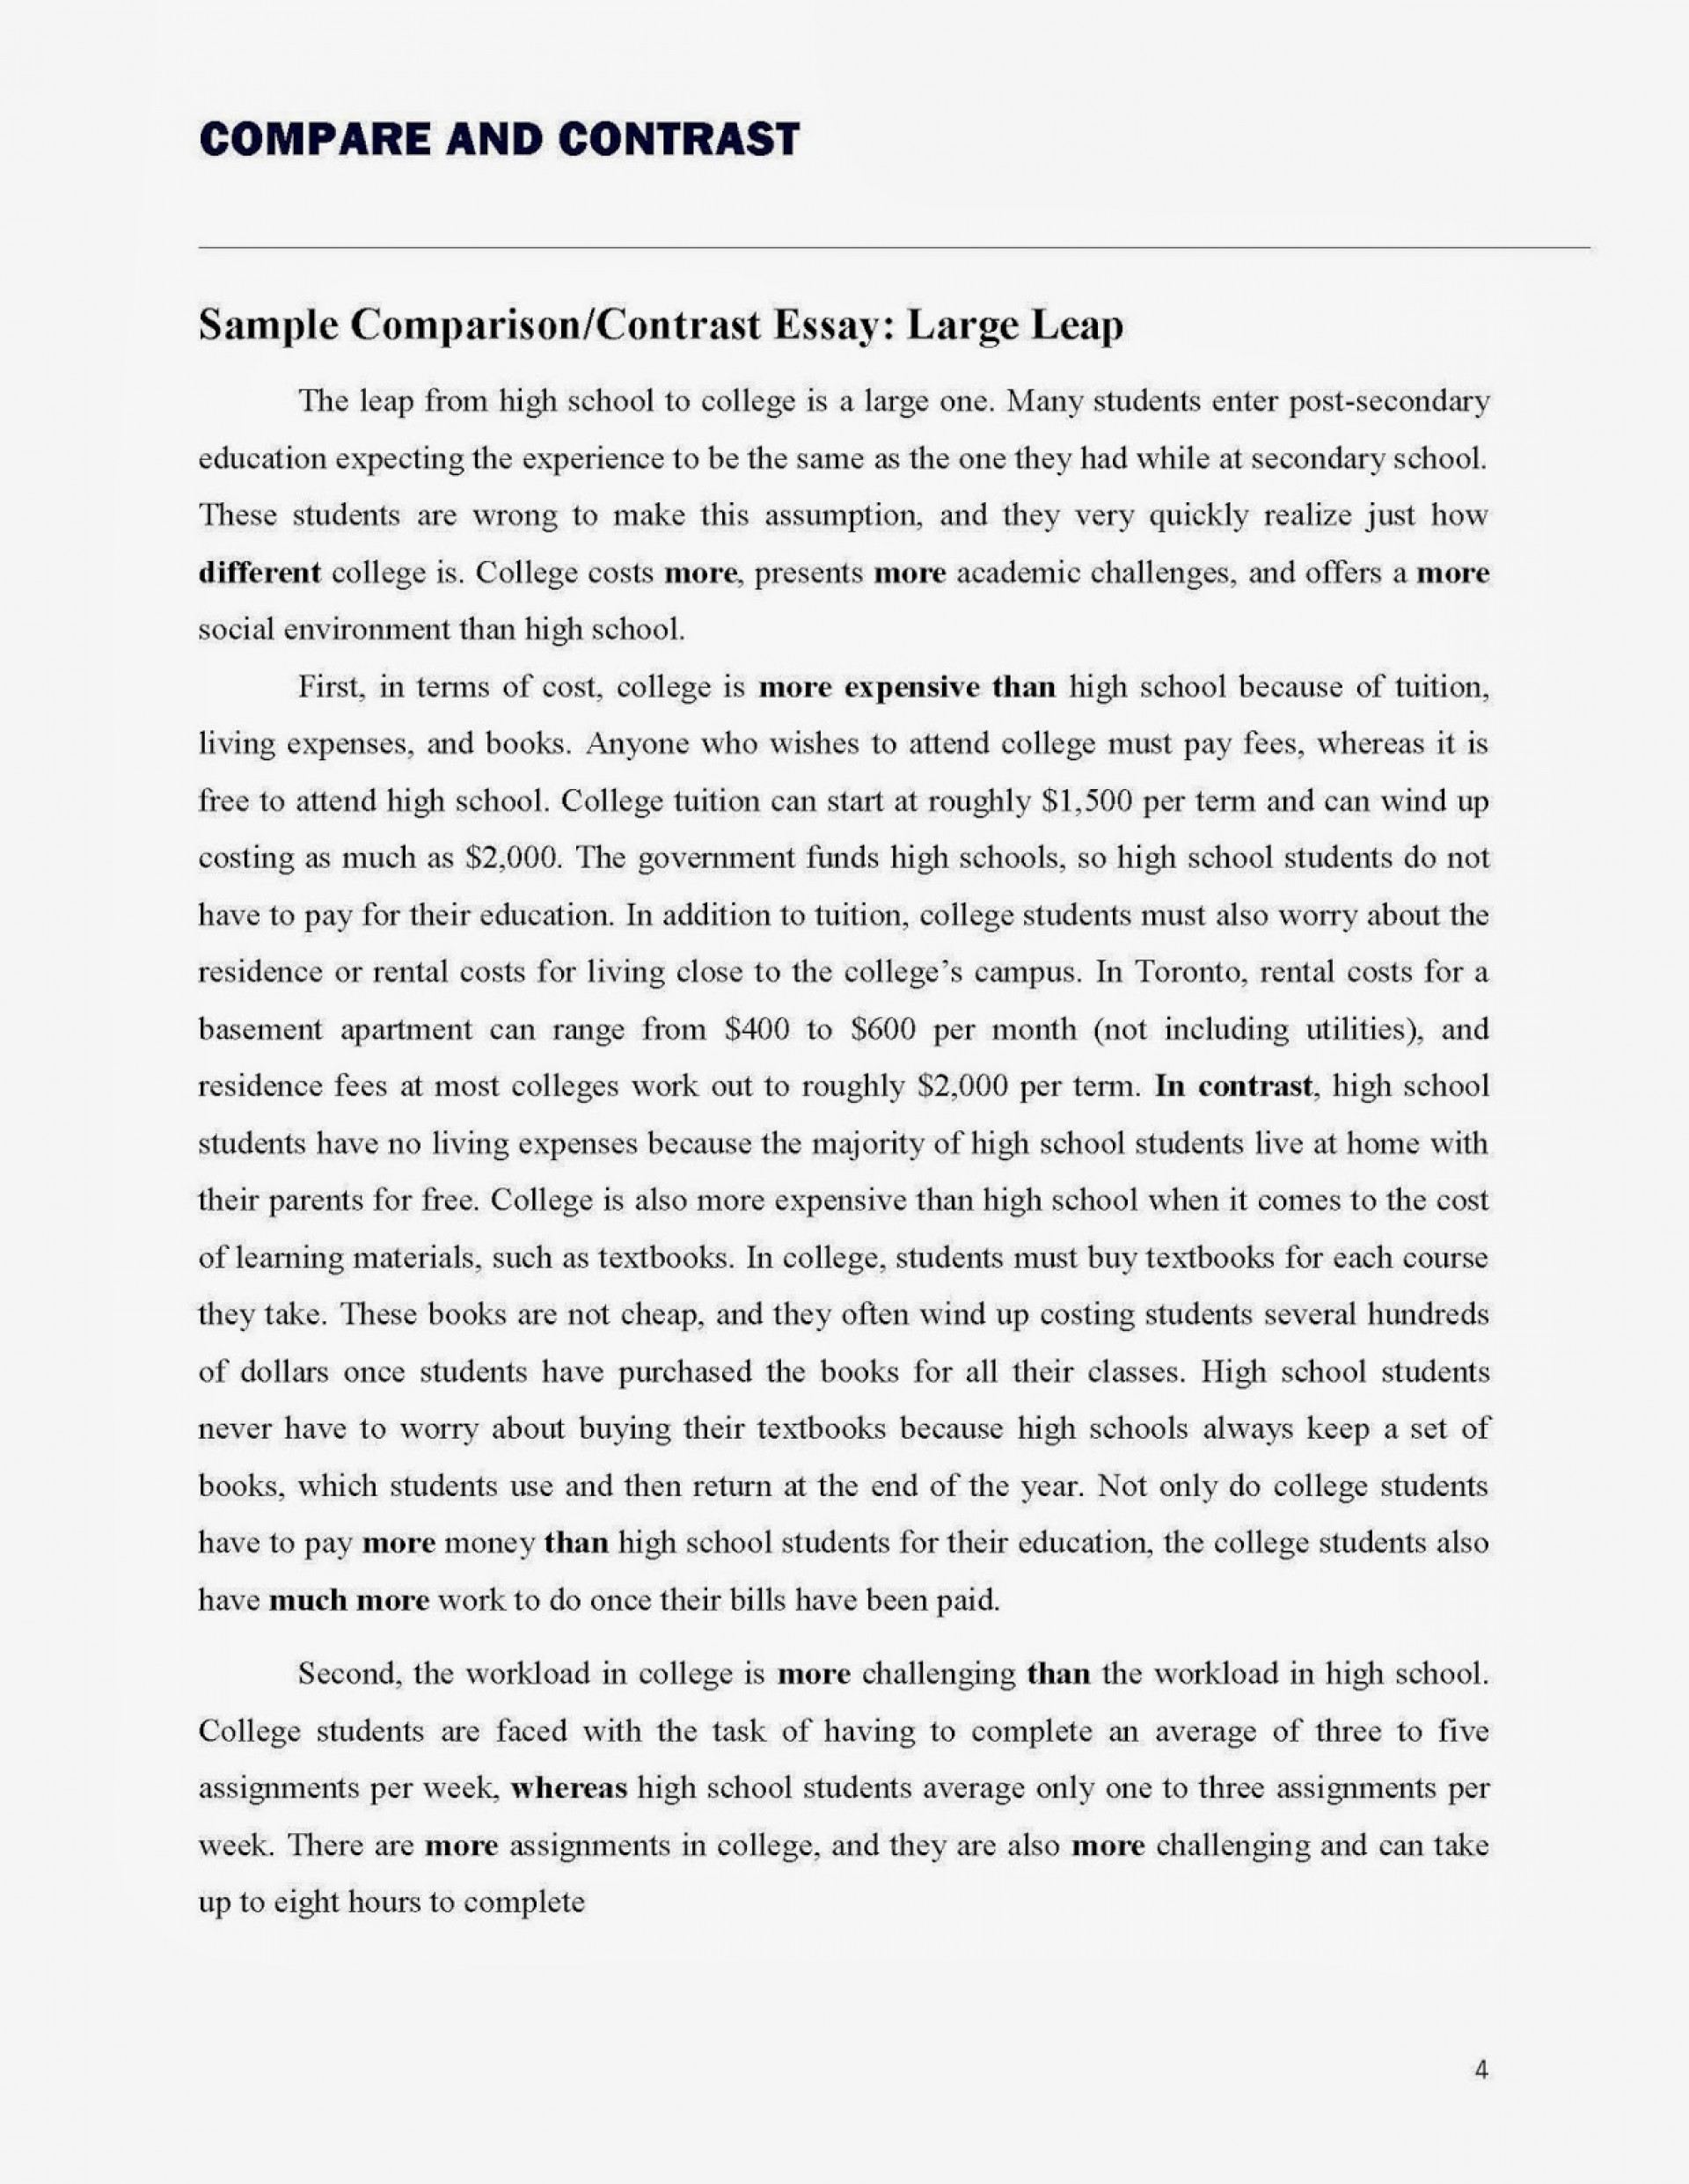 011 Good Compare And Contrast Essay Compare20and20contrast20essay Page 4 Unbelievable How To Write A Conclusion Paragraph For Examples Transition Words Essays Pdf 1920